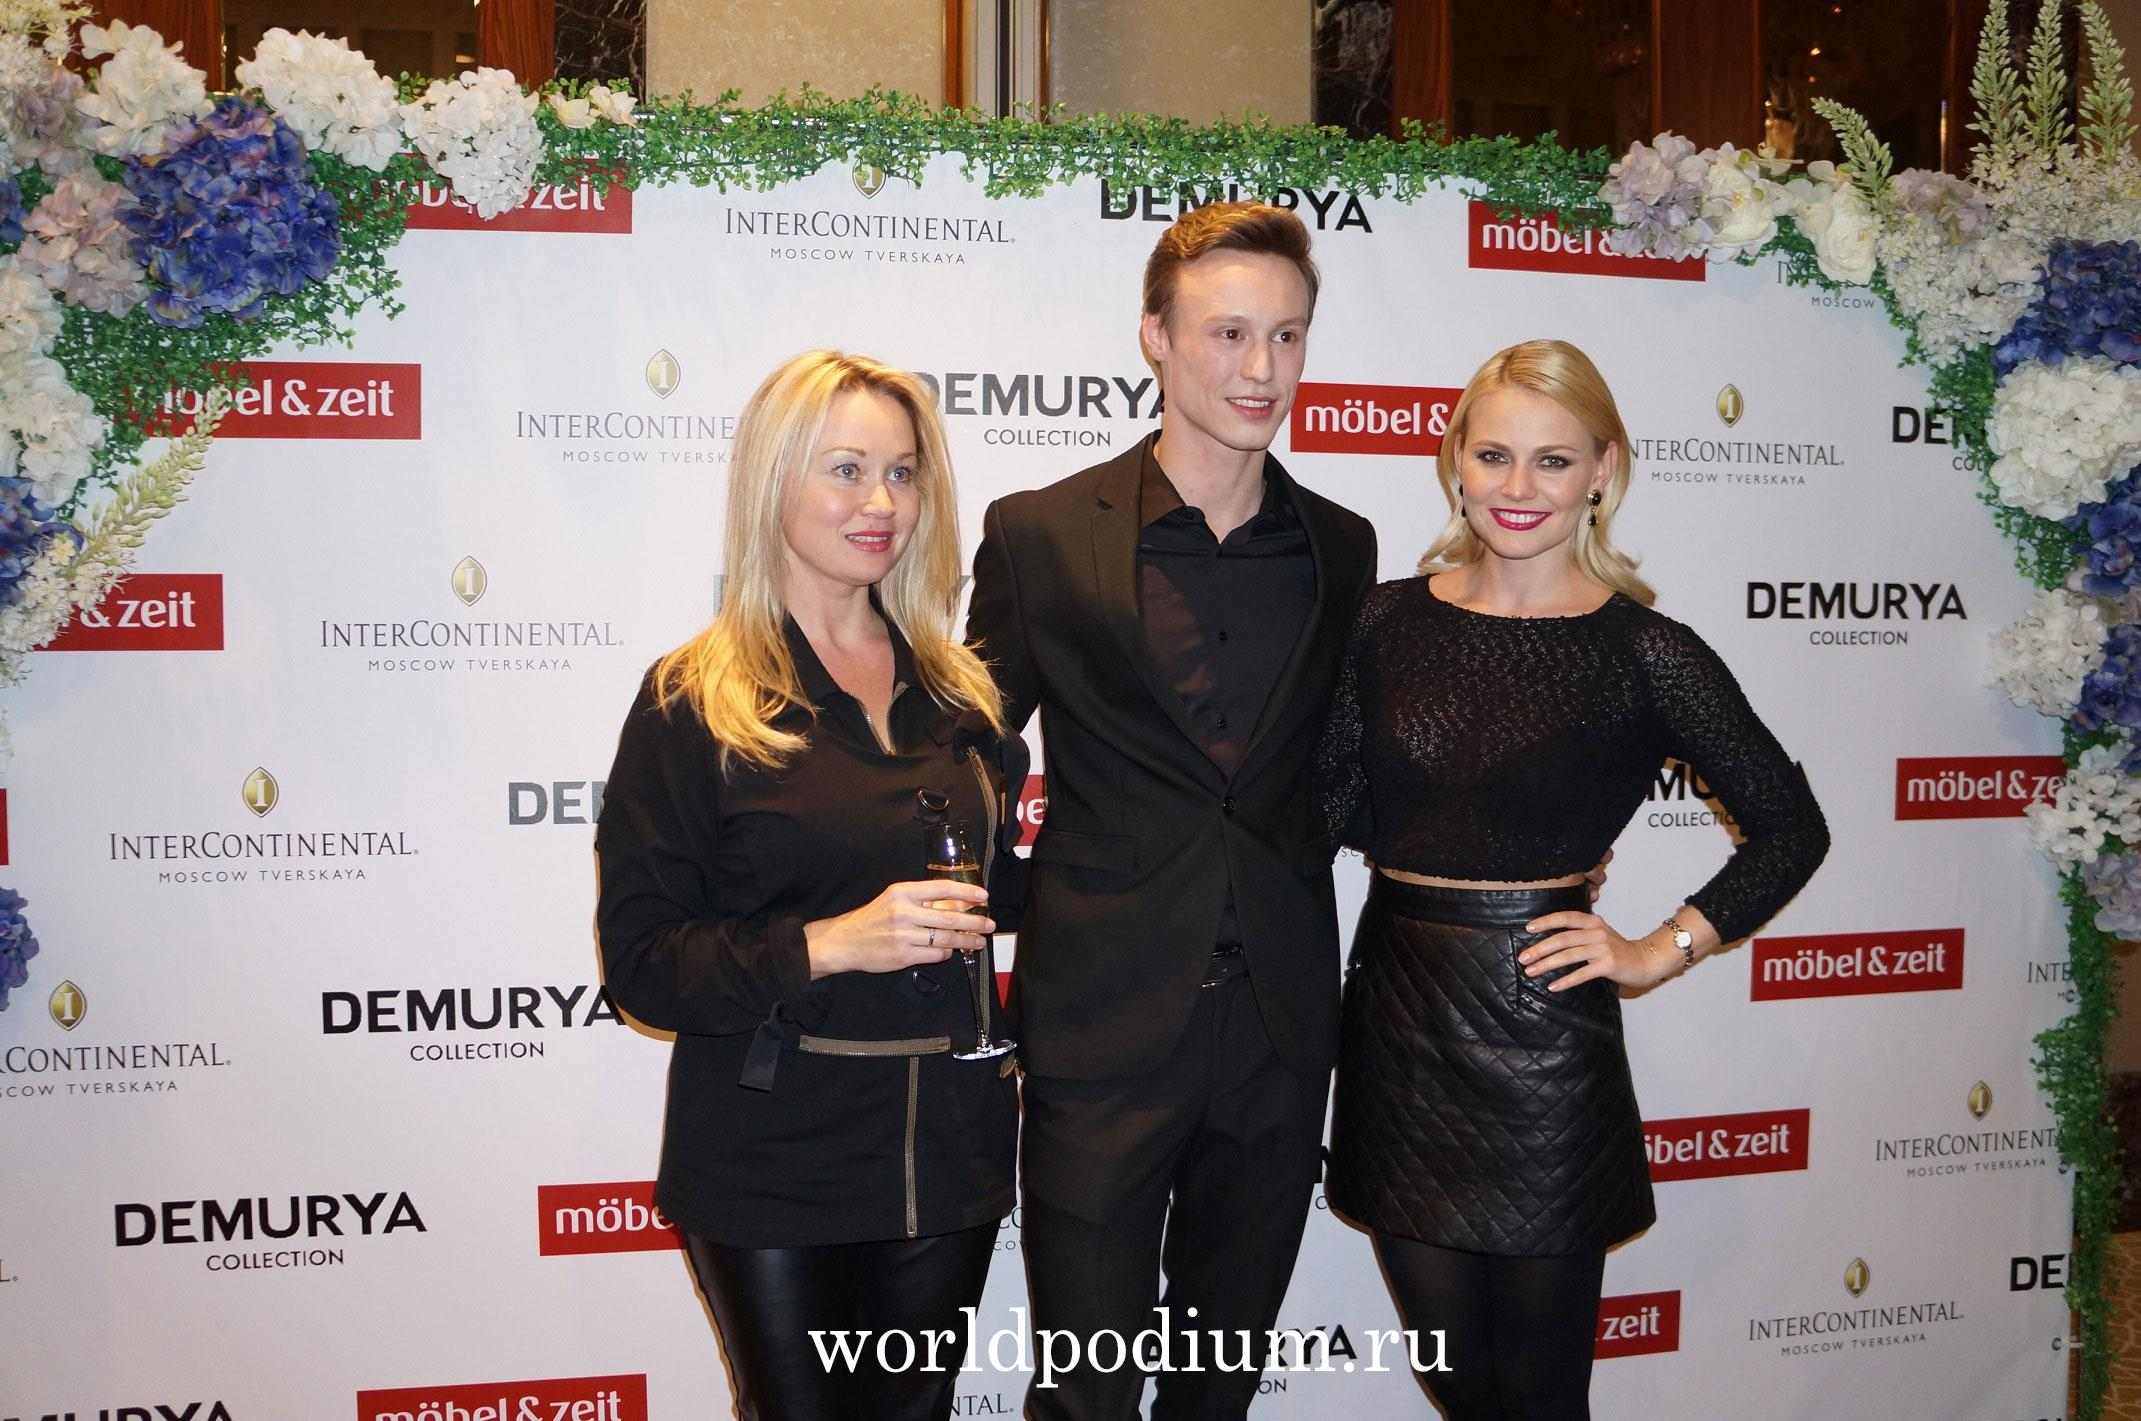 Demurya Fashion Cocktail прошел в Intercontinental